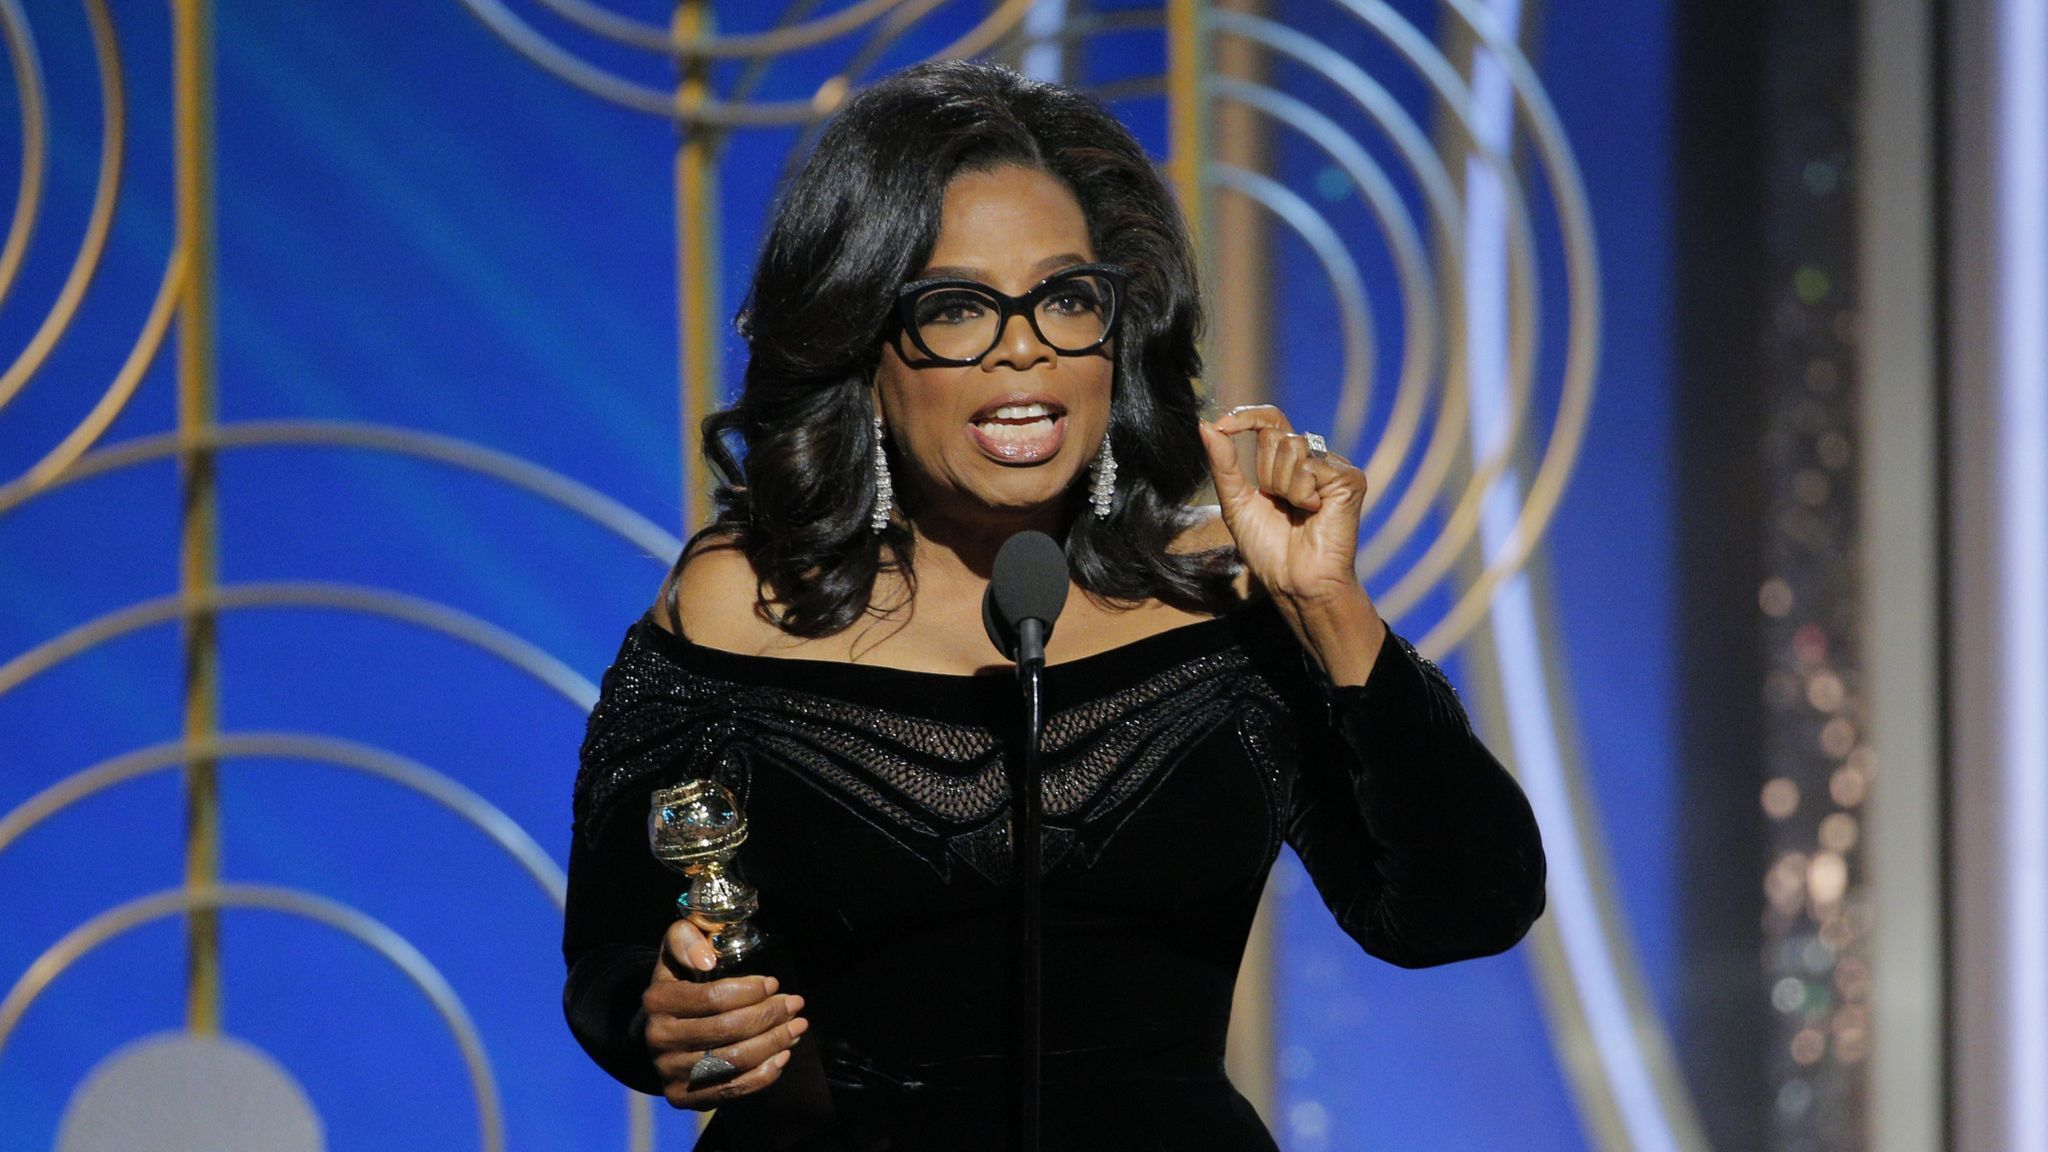 The Spin: Lightfoot's gift to Oprah | Emanuel picking a horse in 2020? | Obama center clears legal hurdle